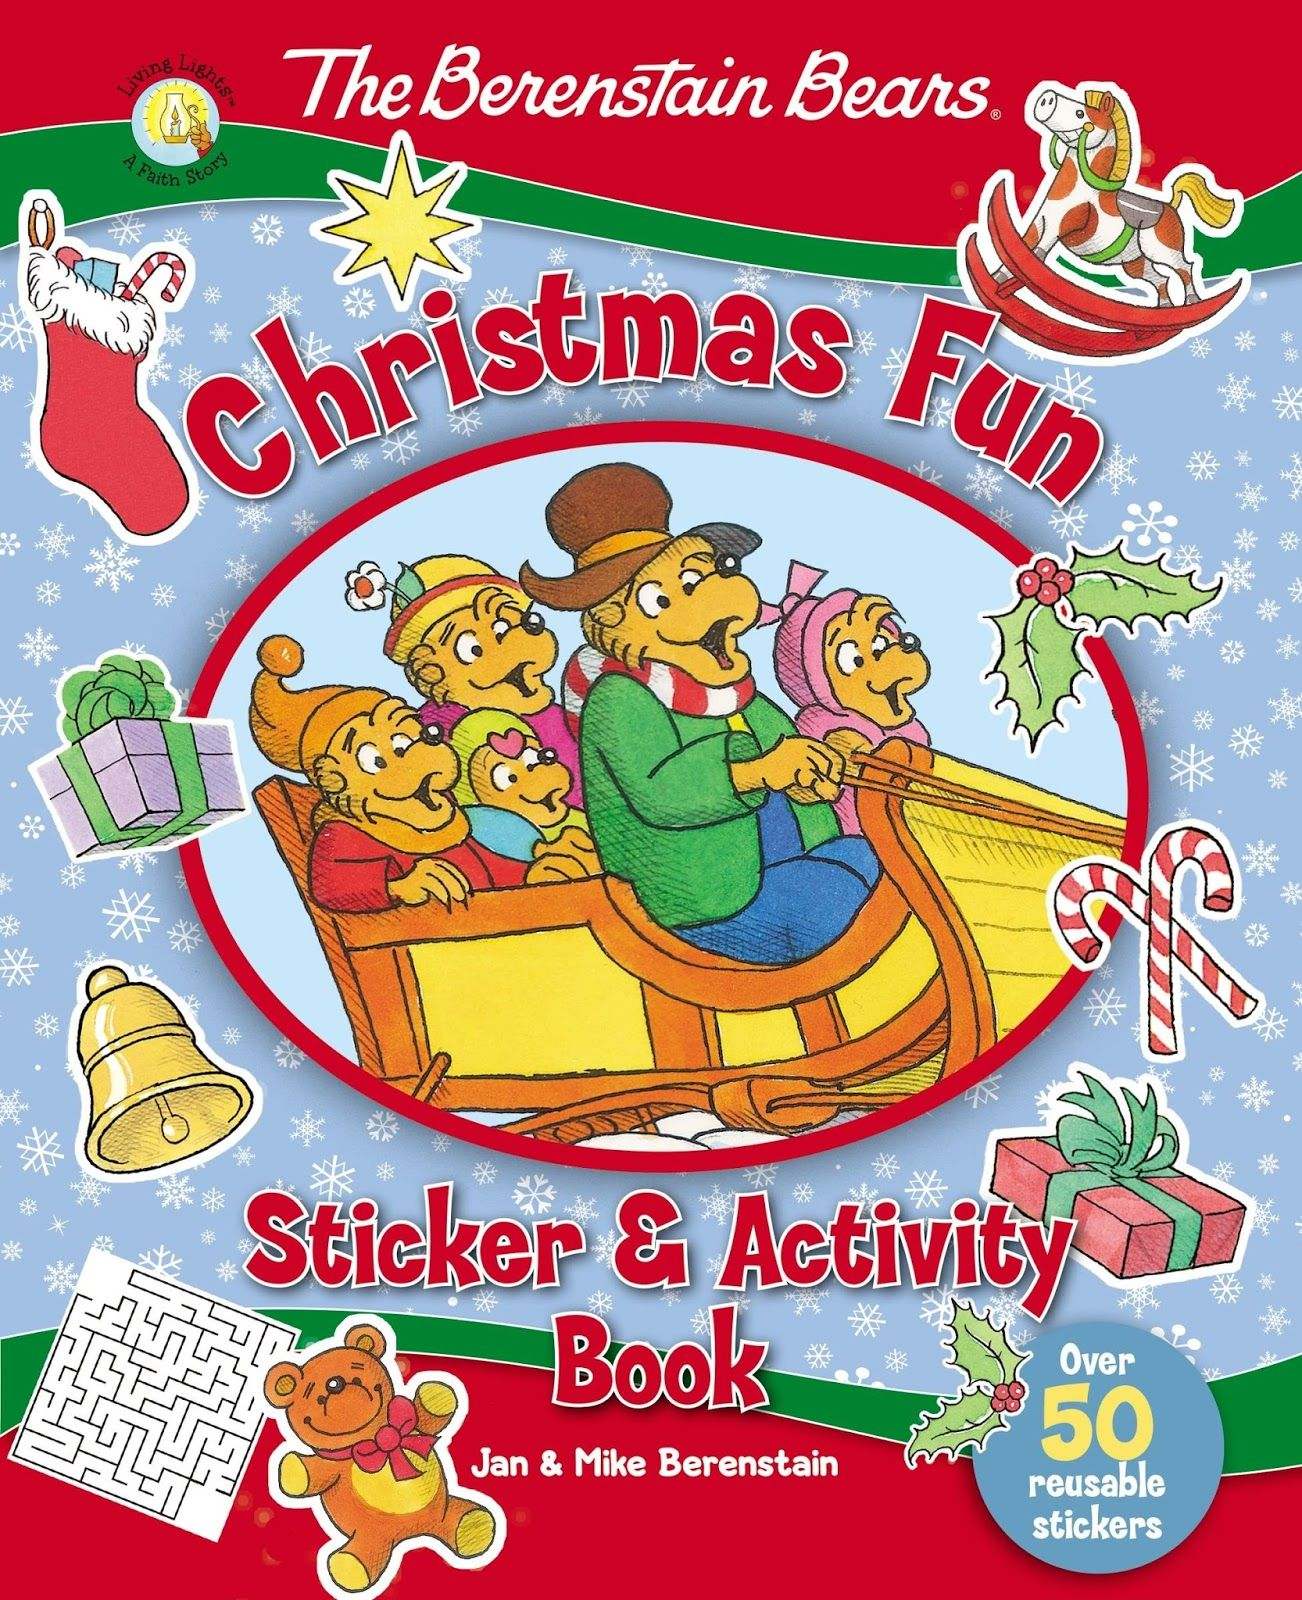 The Berenstain Bears Bear Christmas Fun Sticker Activity Book Is A 32 Page